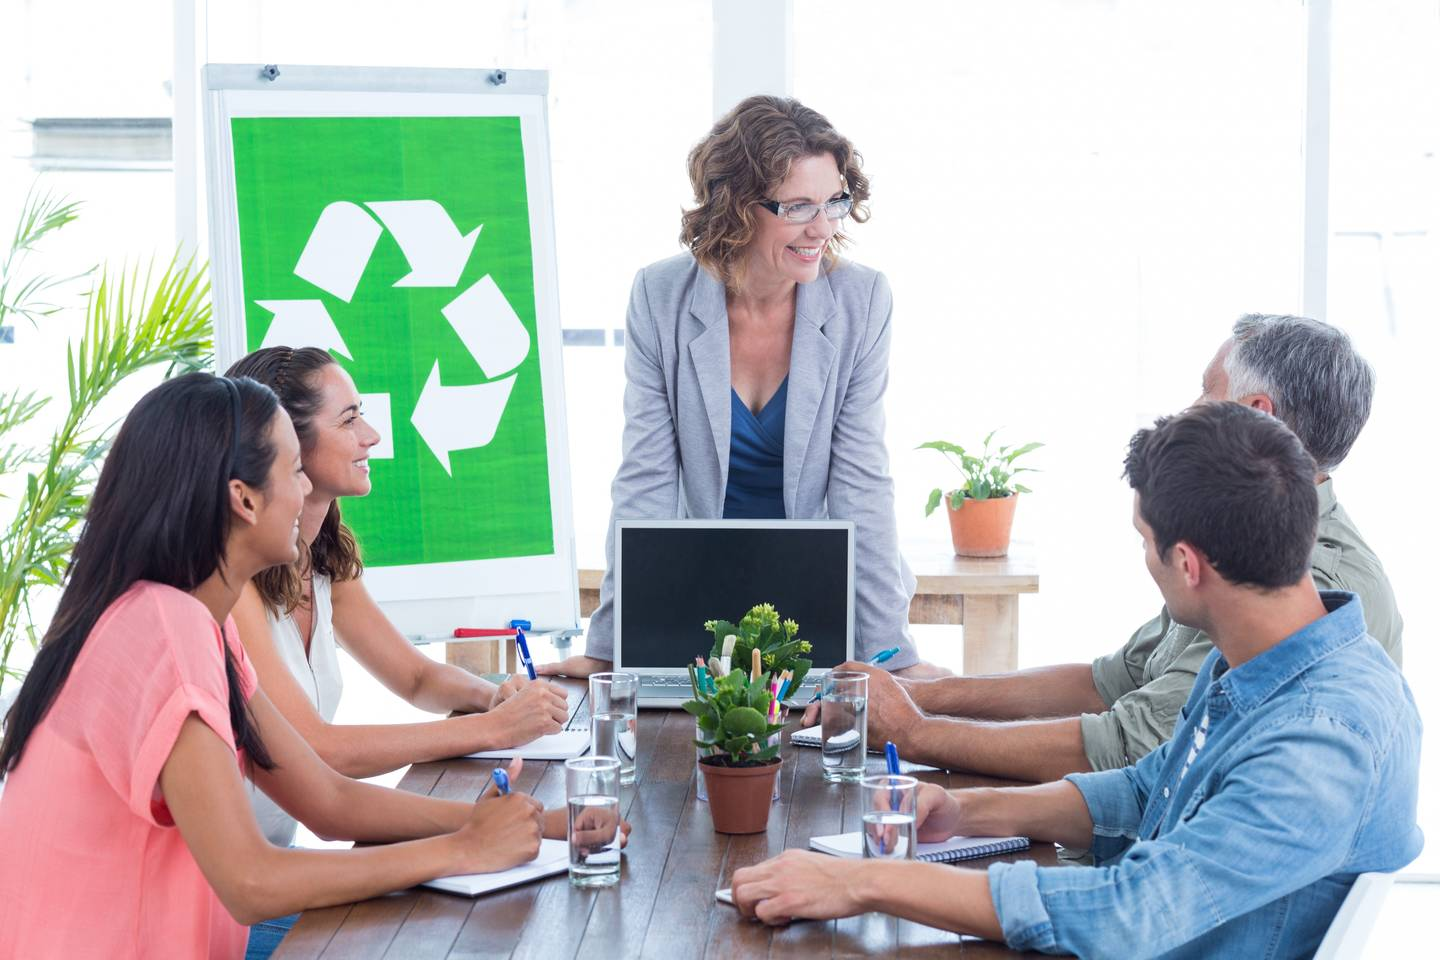 Sustainable break room options in the San Francisco Bay Area